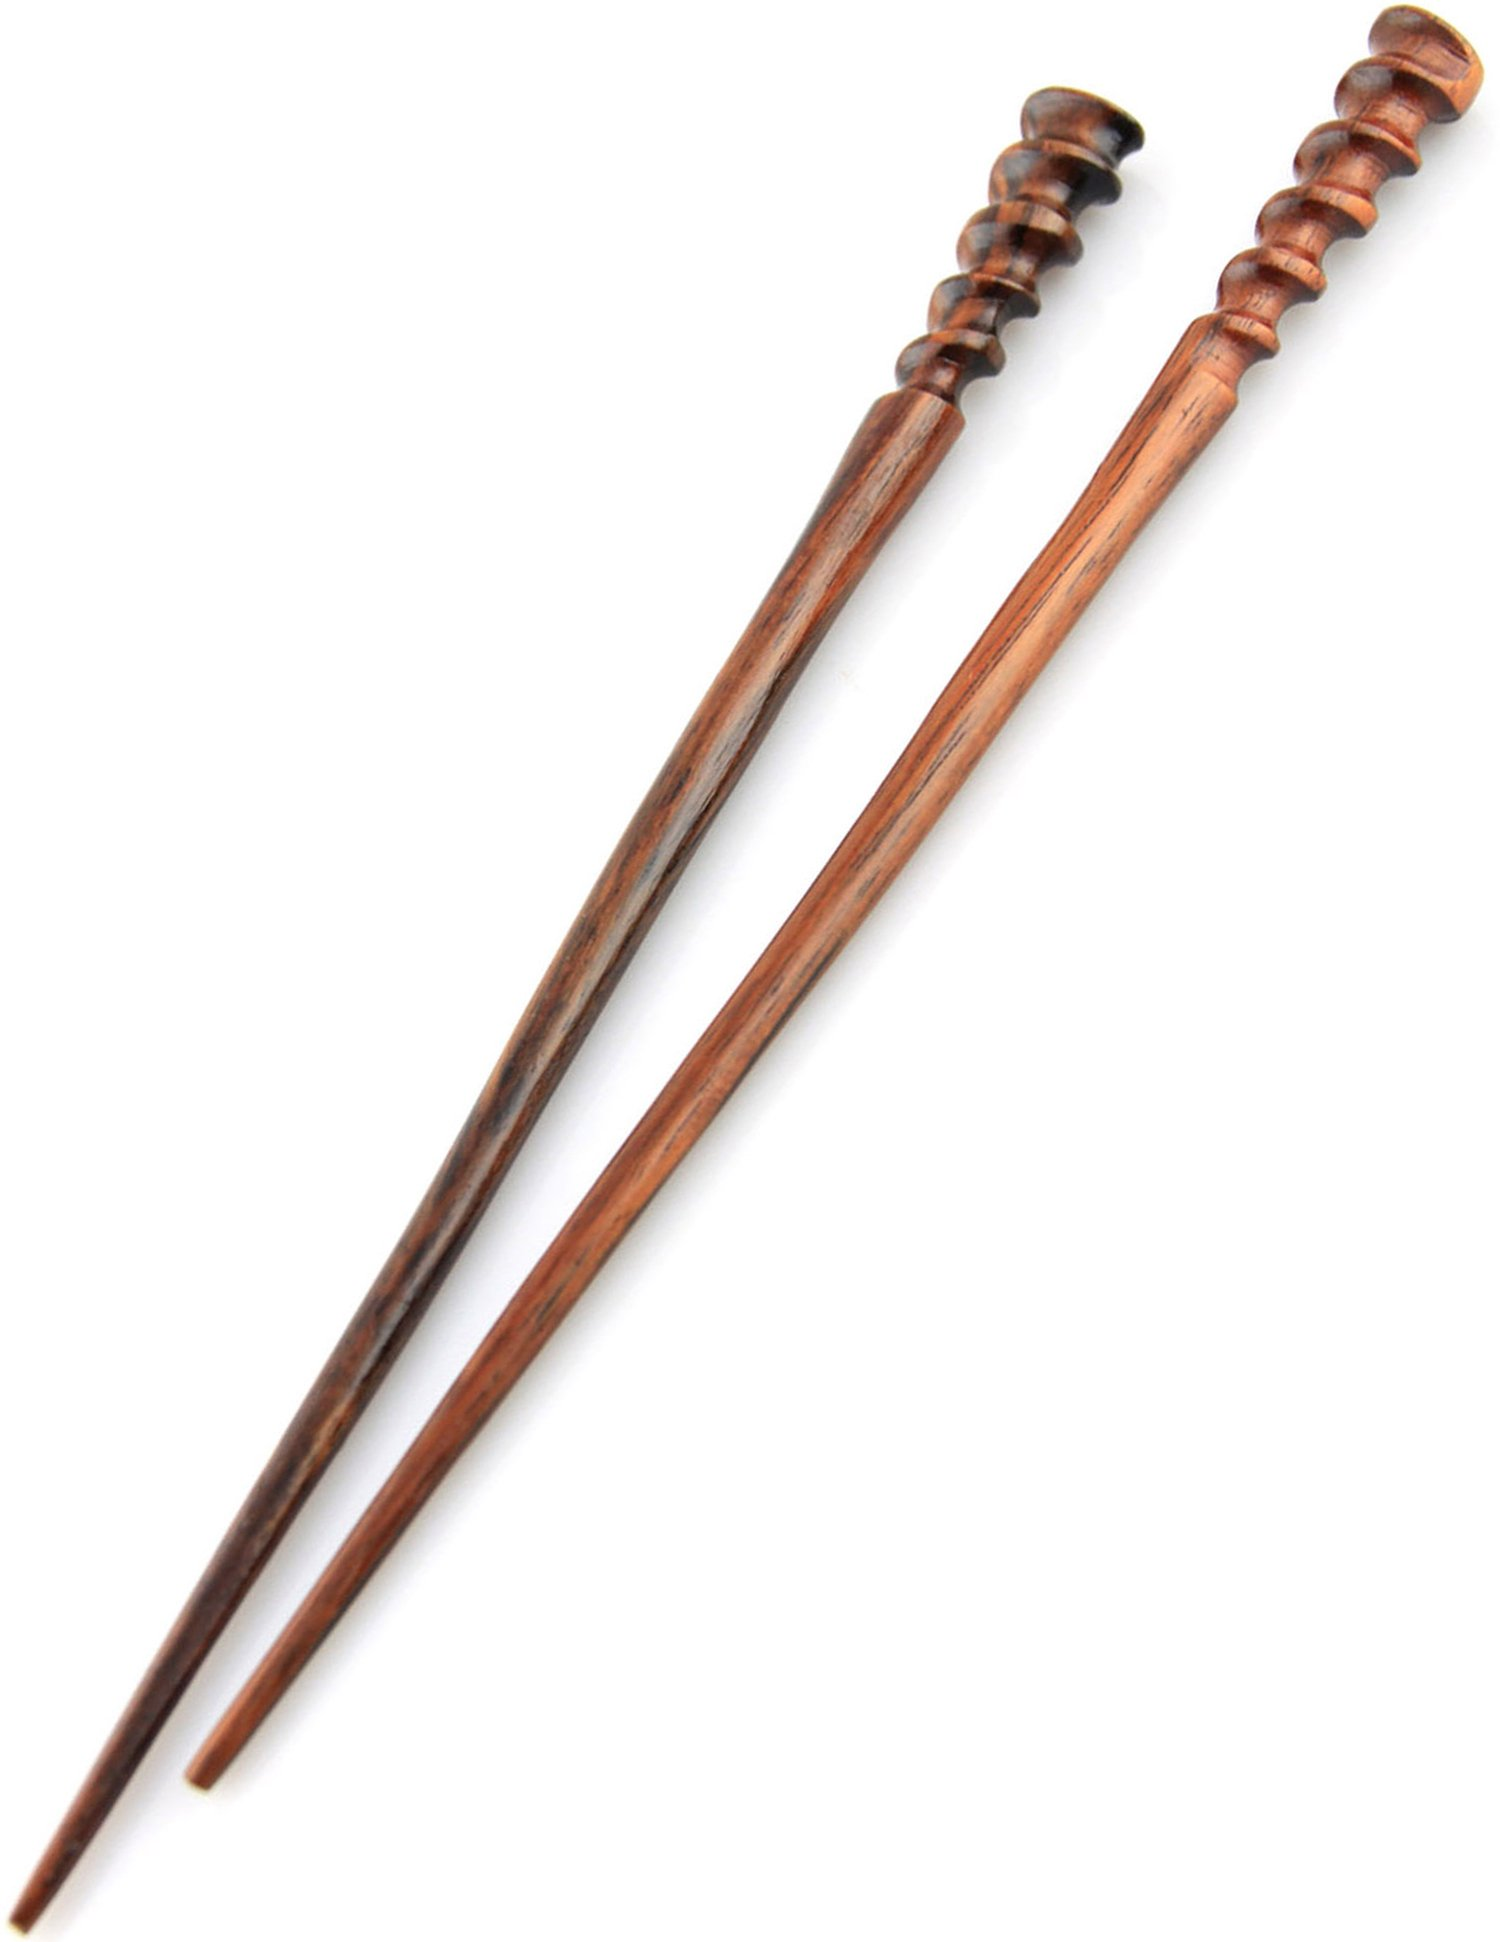 Natural Hair Pin Chopsticks - Pair of Spiral Hair Sticks for Women and Men - Hand Carved Wood Styling Pin Set - Fine Cut Spiral - 7.5 Inches Long by Evolatree